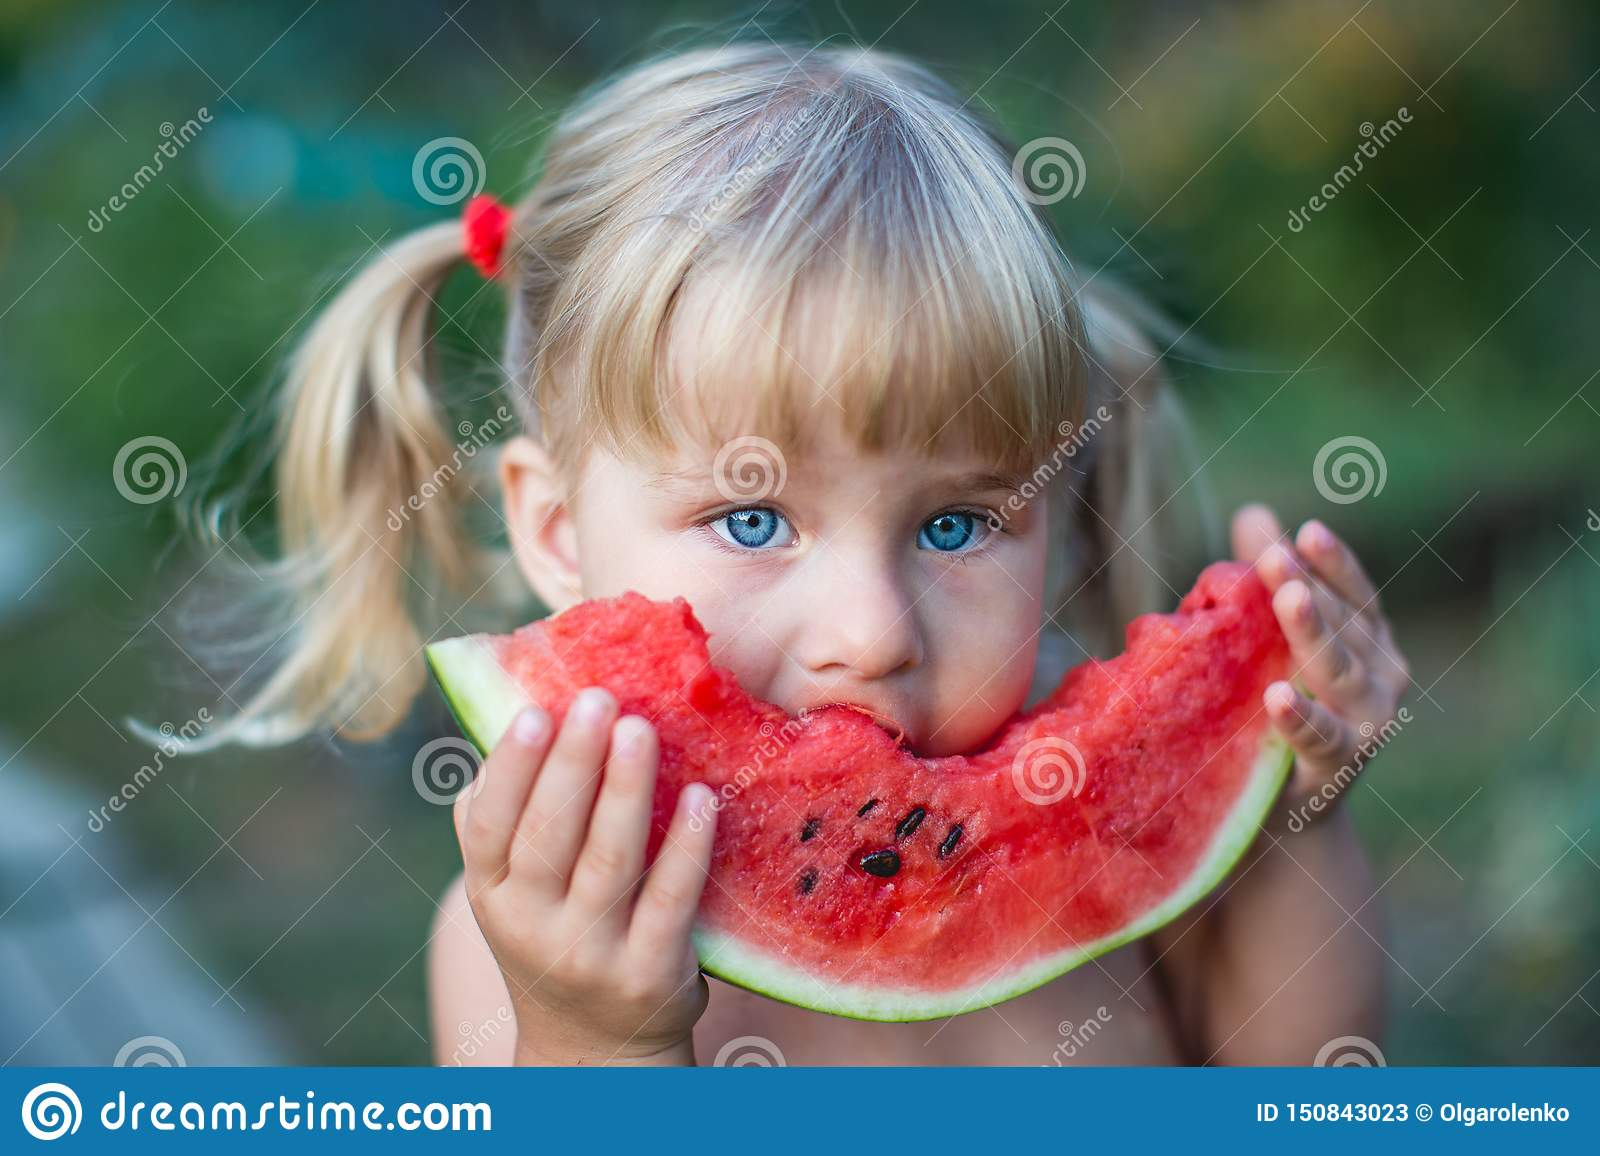 Portrait of beautiful blonde little girl with two ponytails eating watermelon